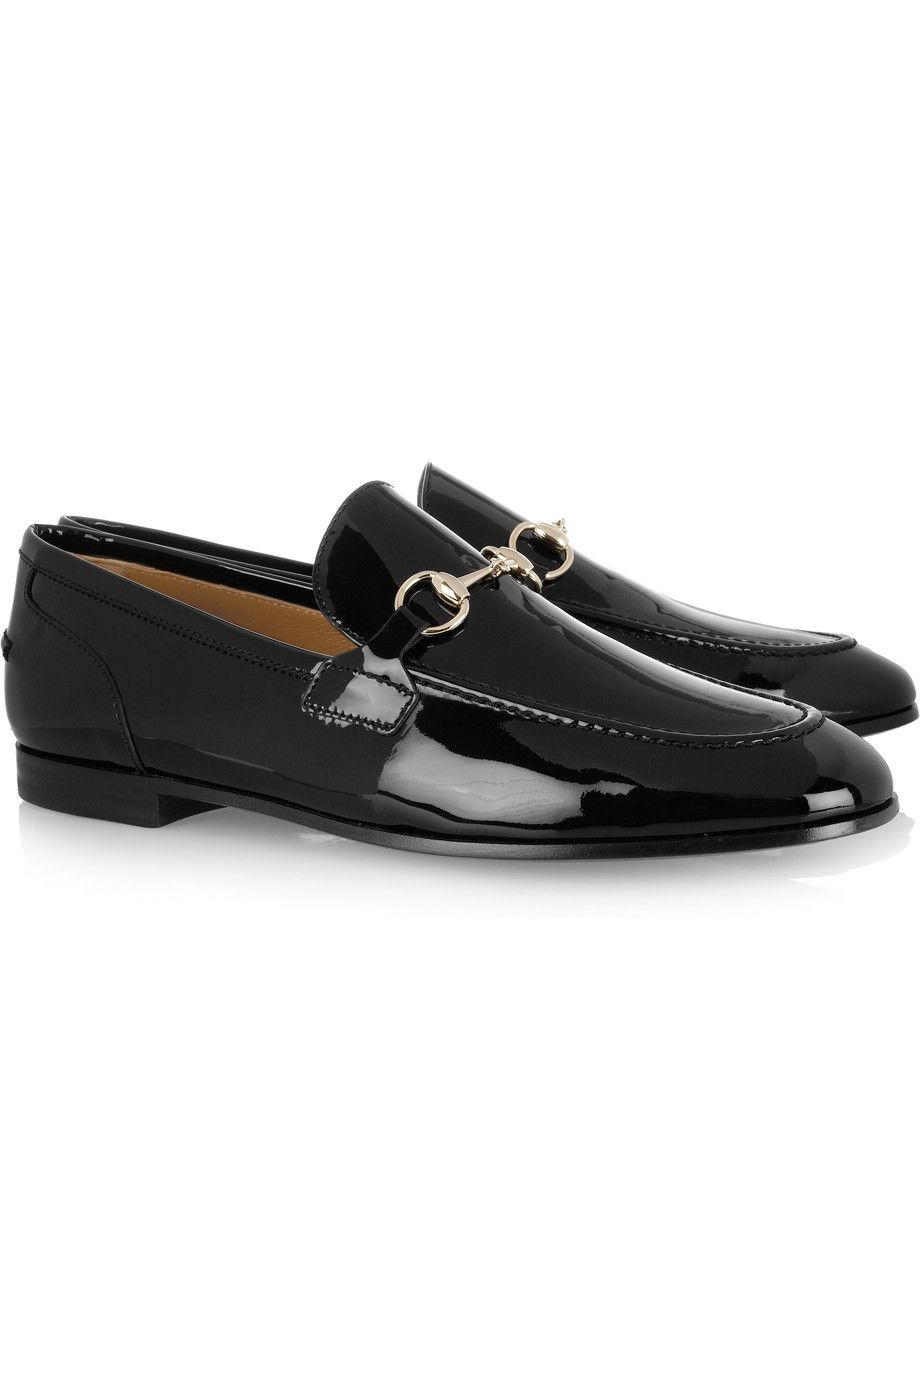 6c7038c79 GUCCI Horsebit-detailed patent-leather loafers for women | Shoes ...